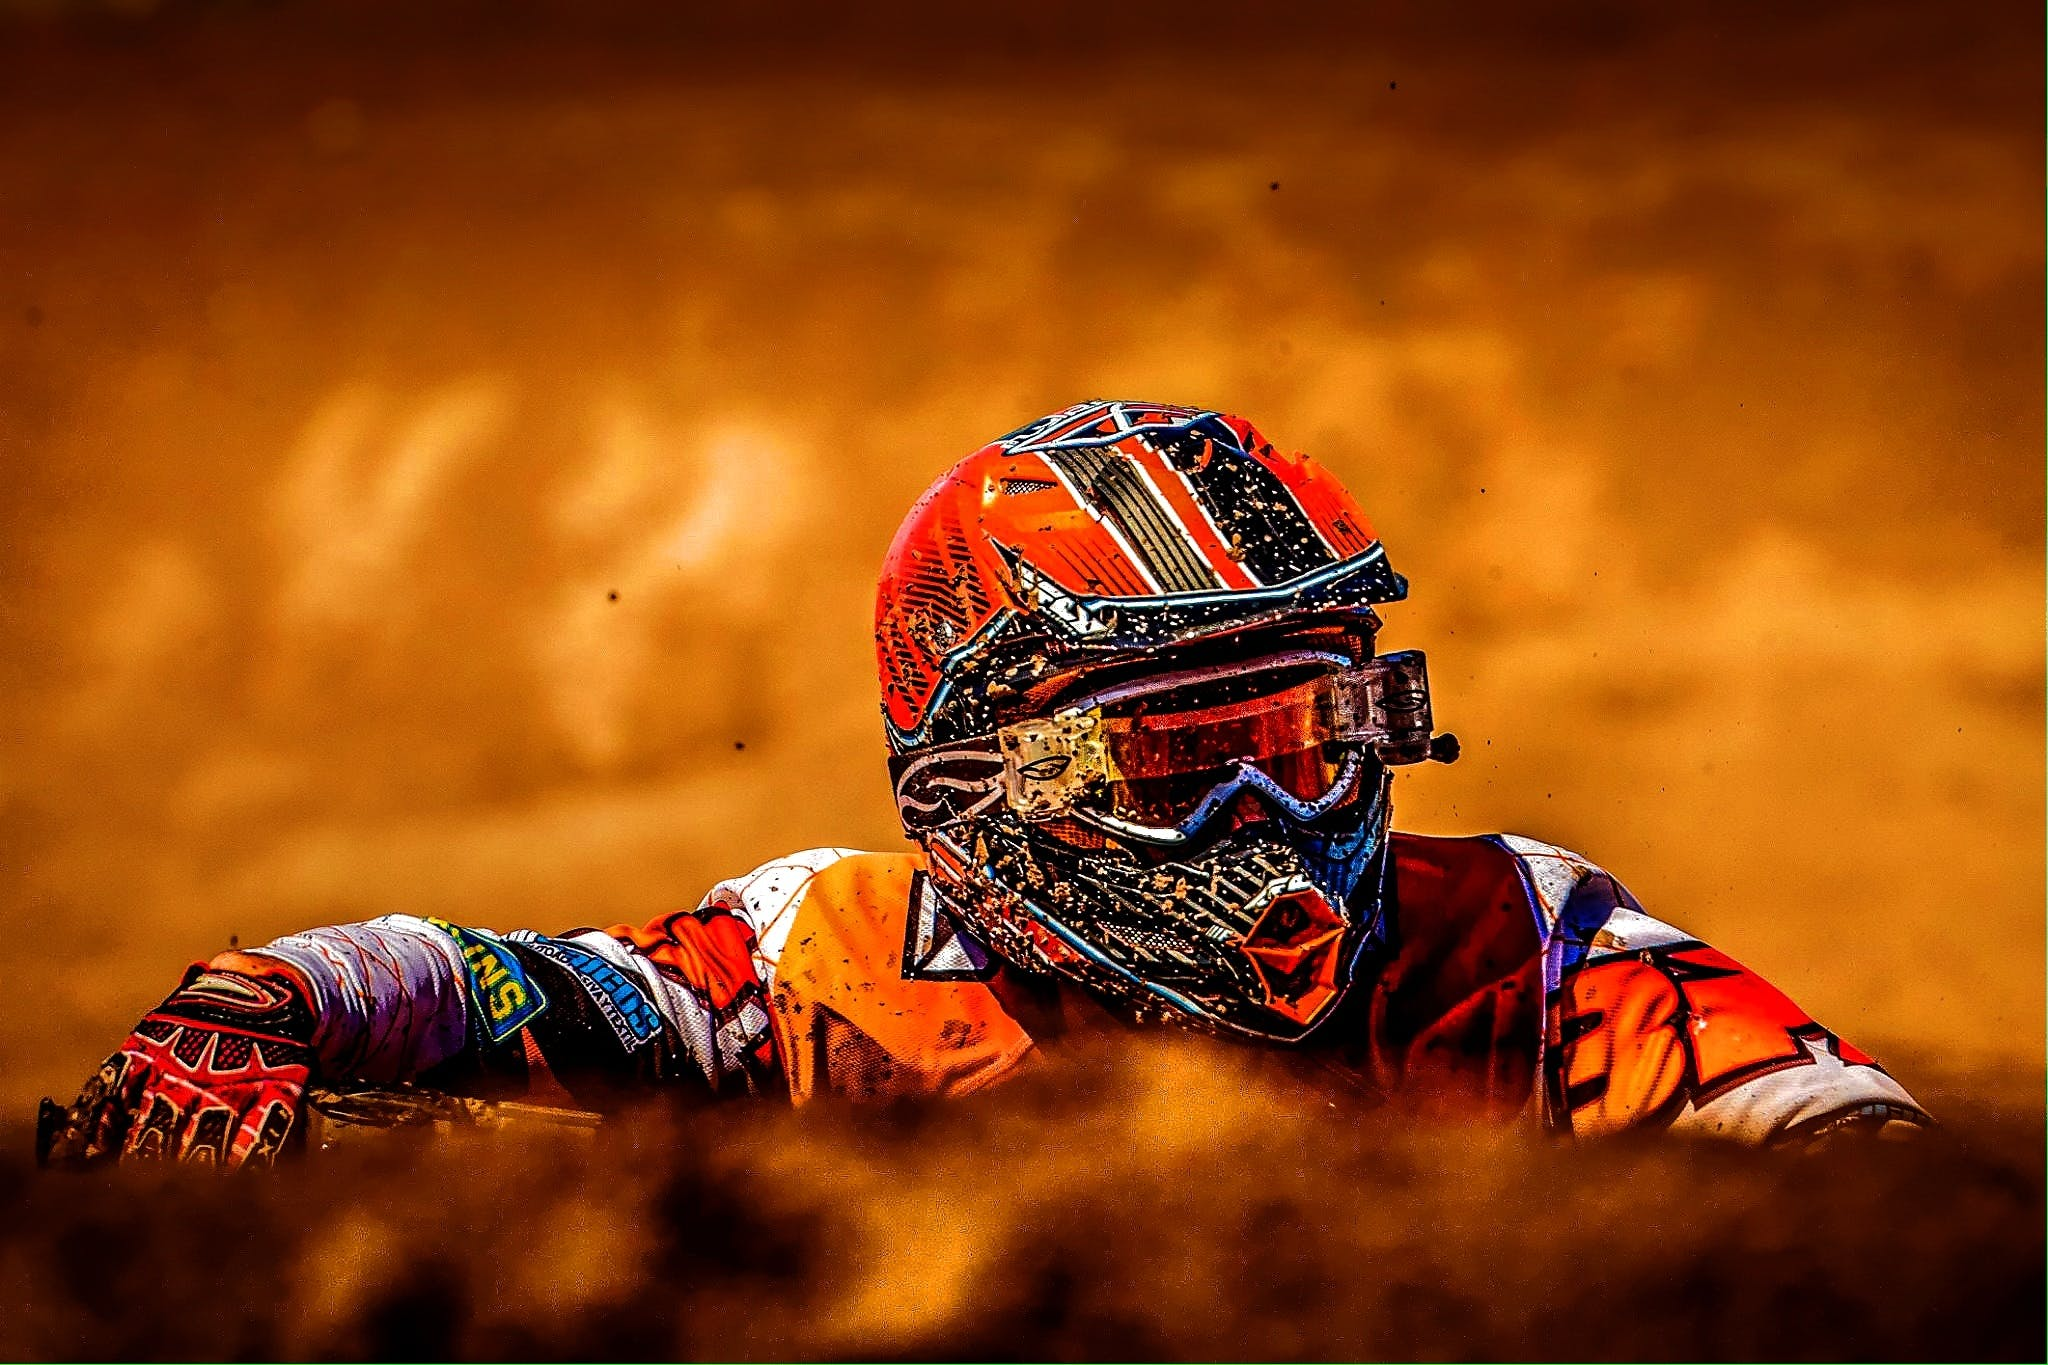 Man Wearing White Black and Orange Motorcross Suit